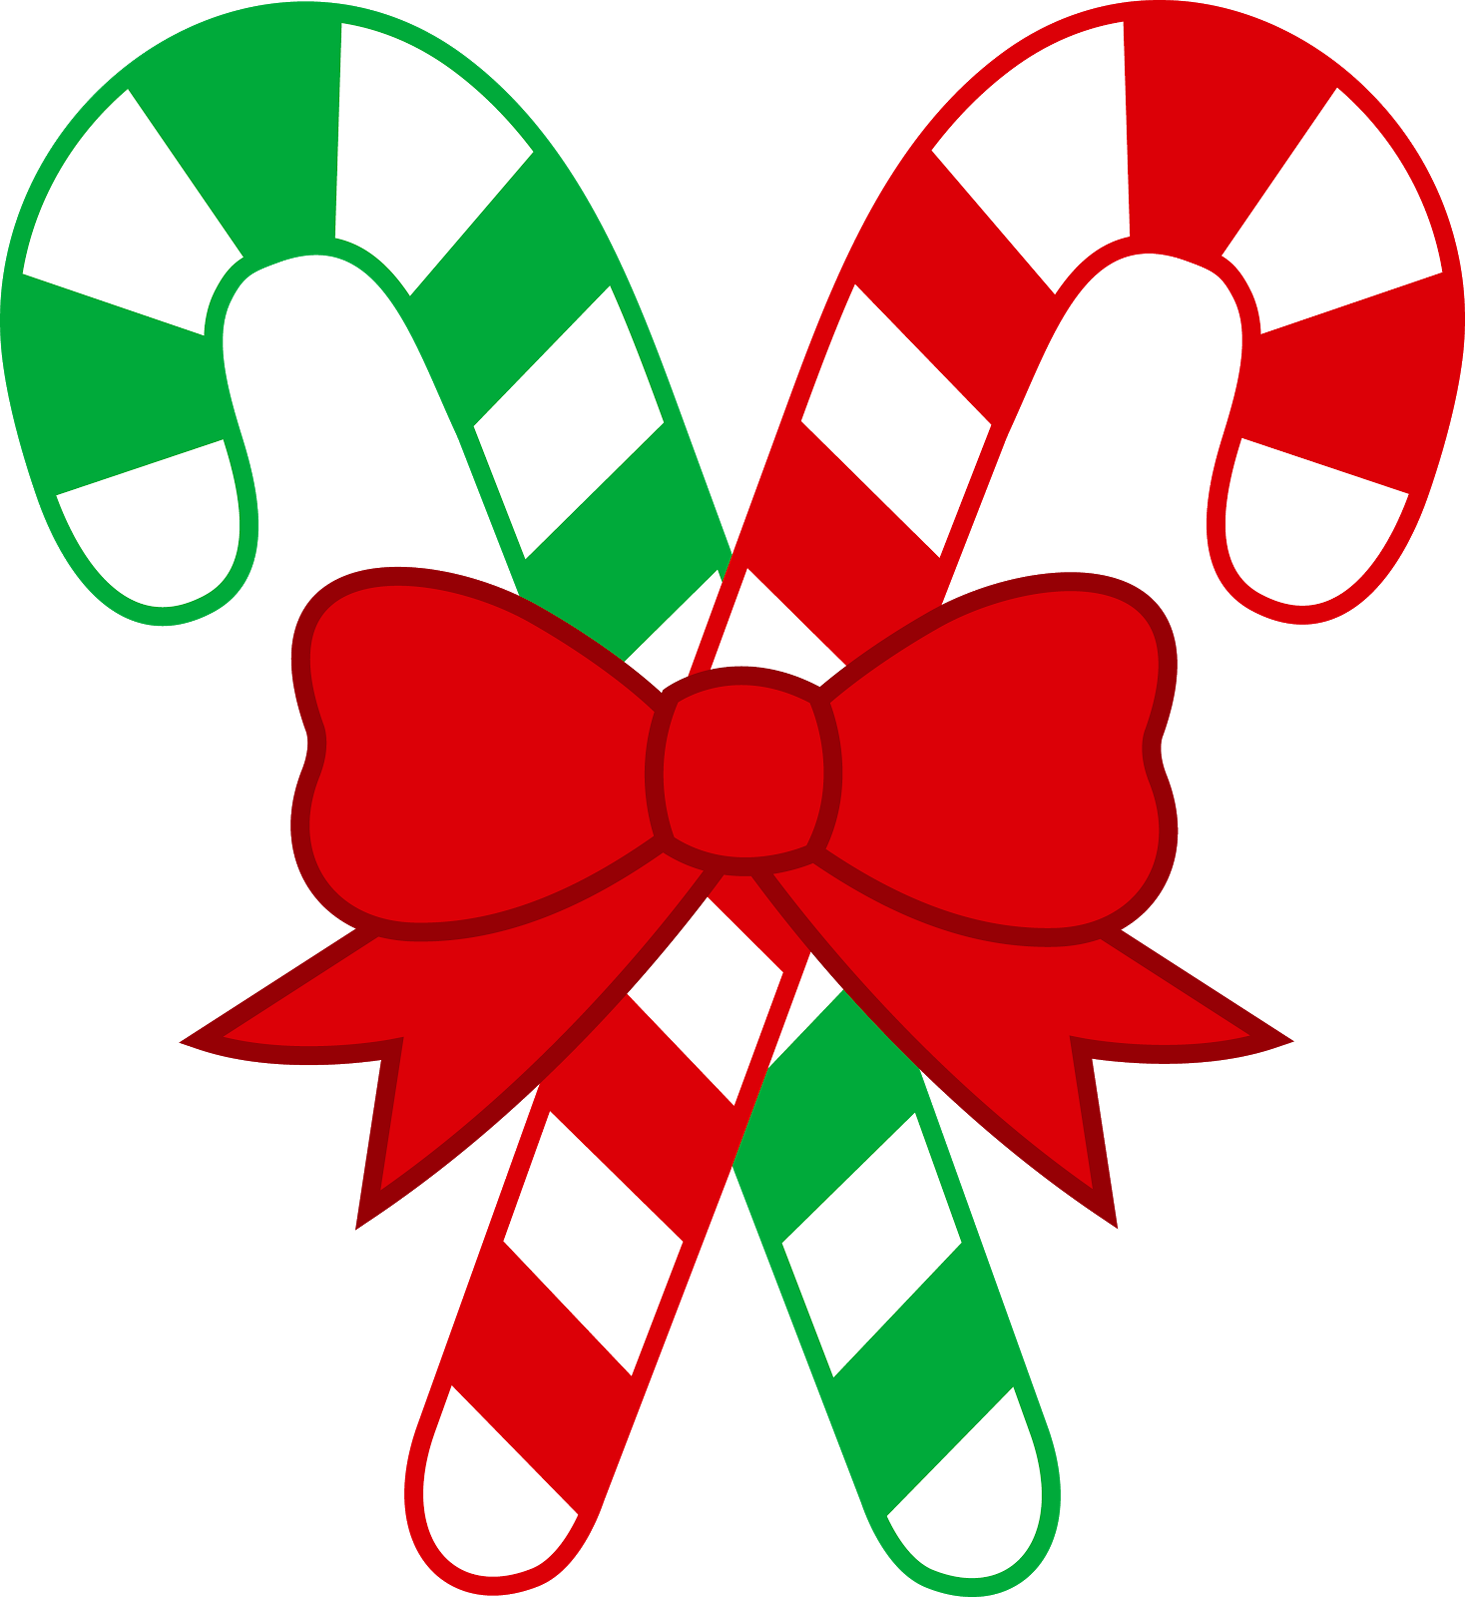 Free Candy Cane Clipart Public Domain Ch-Free candy cane clipart public domain christmas clip art images 2-15